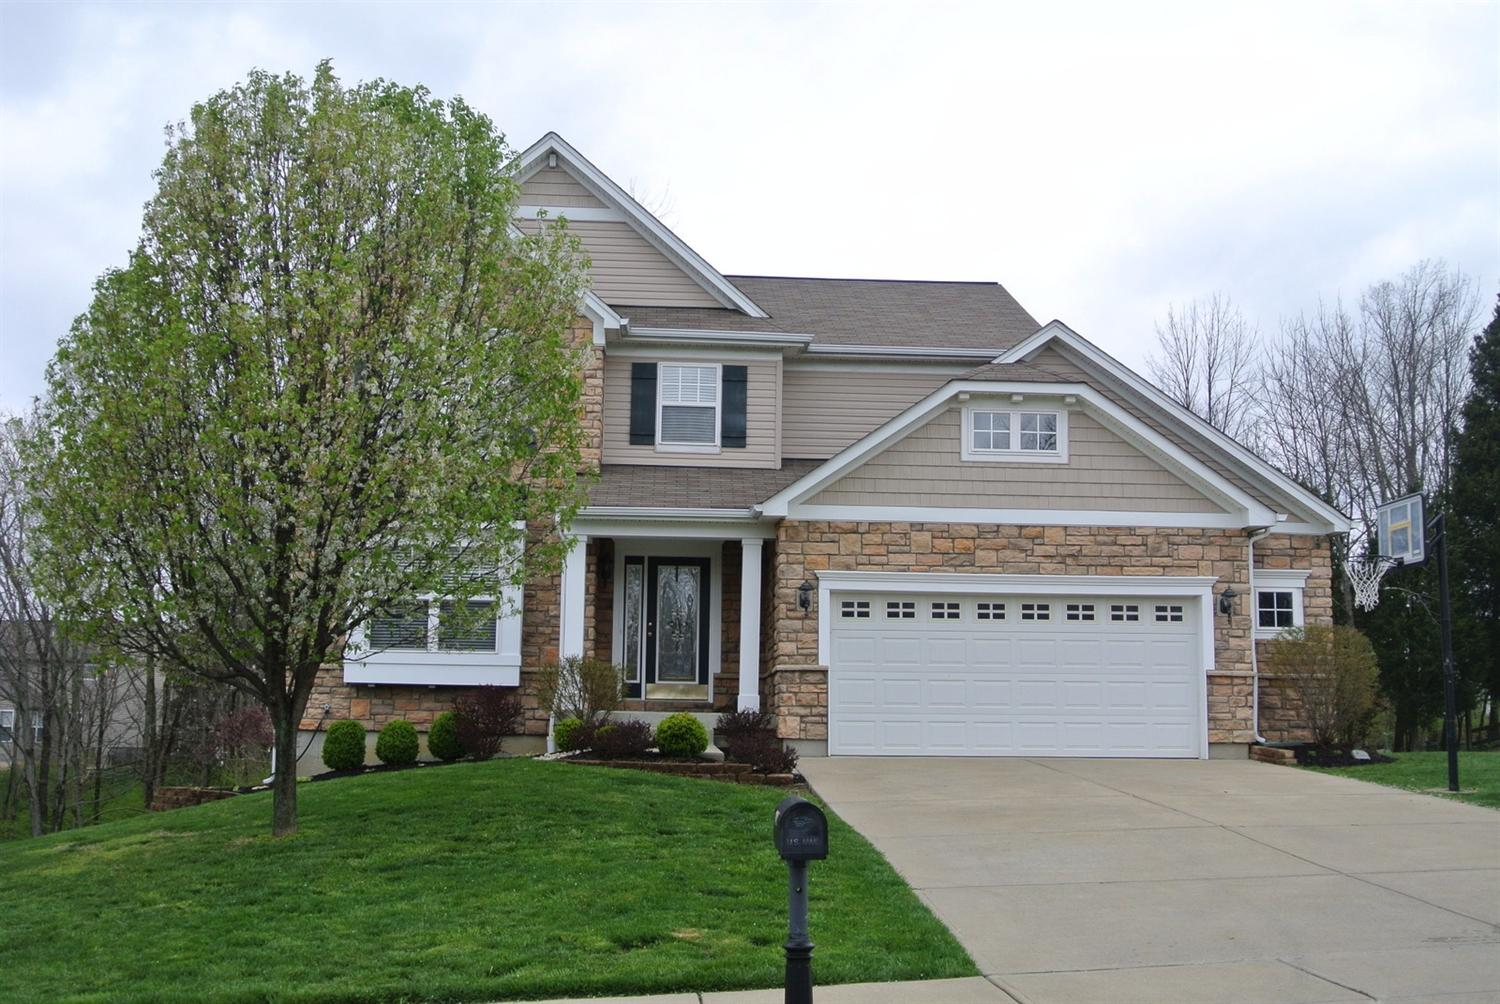 Photo 1 for 793 Windmill Dr Independence, KY 41051